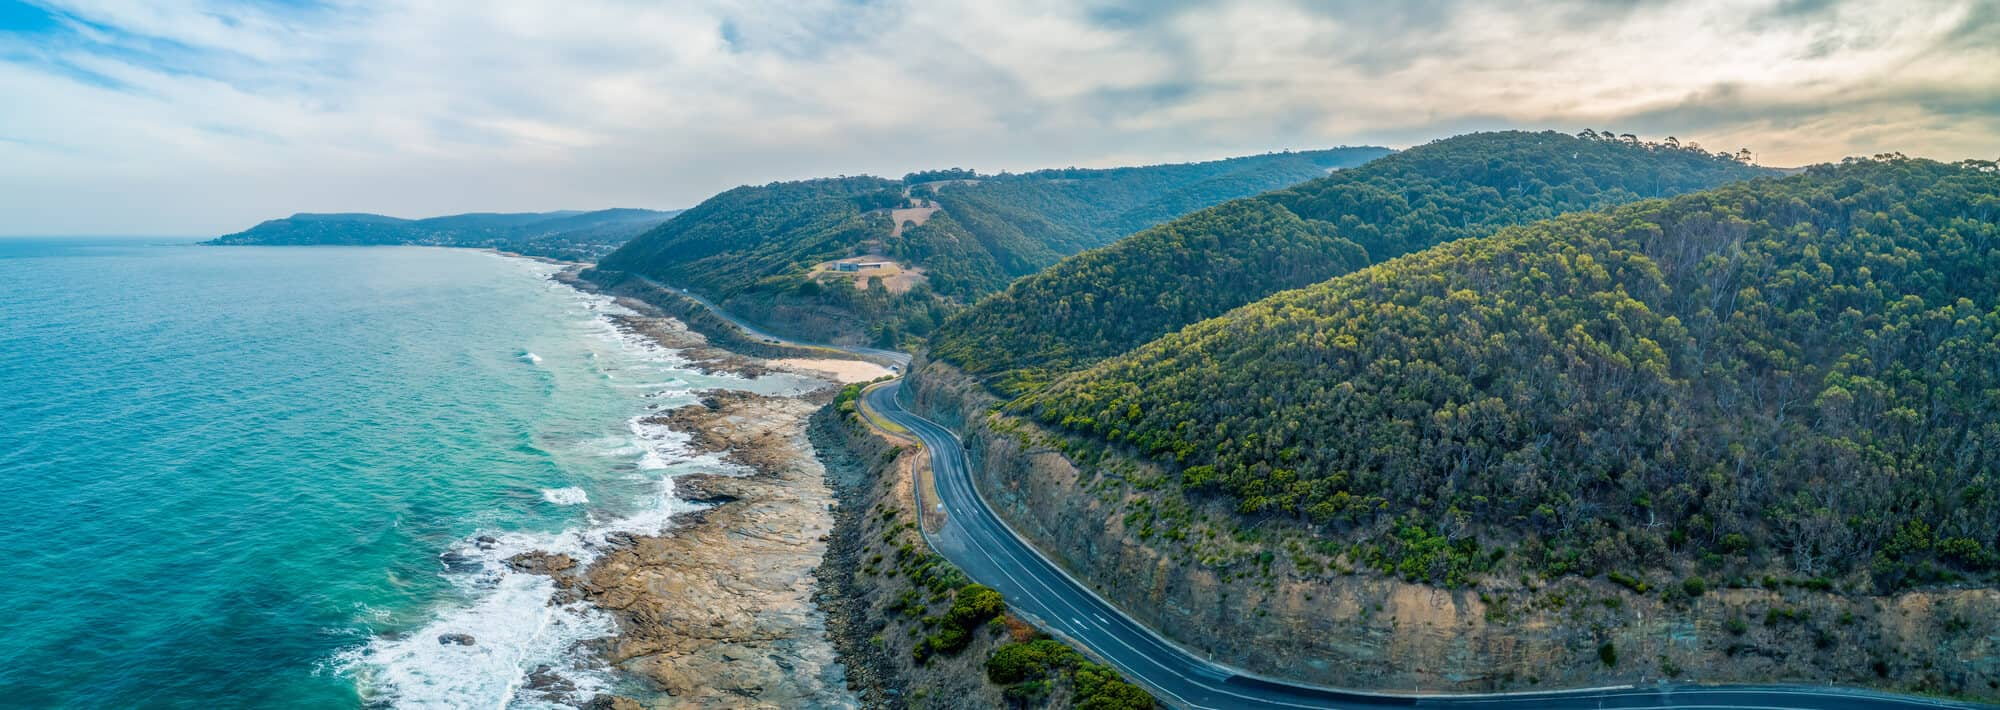 Guide to Touring The Great Ocean Road Header Image - Aerial View of the Great Ocean Road